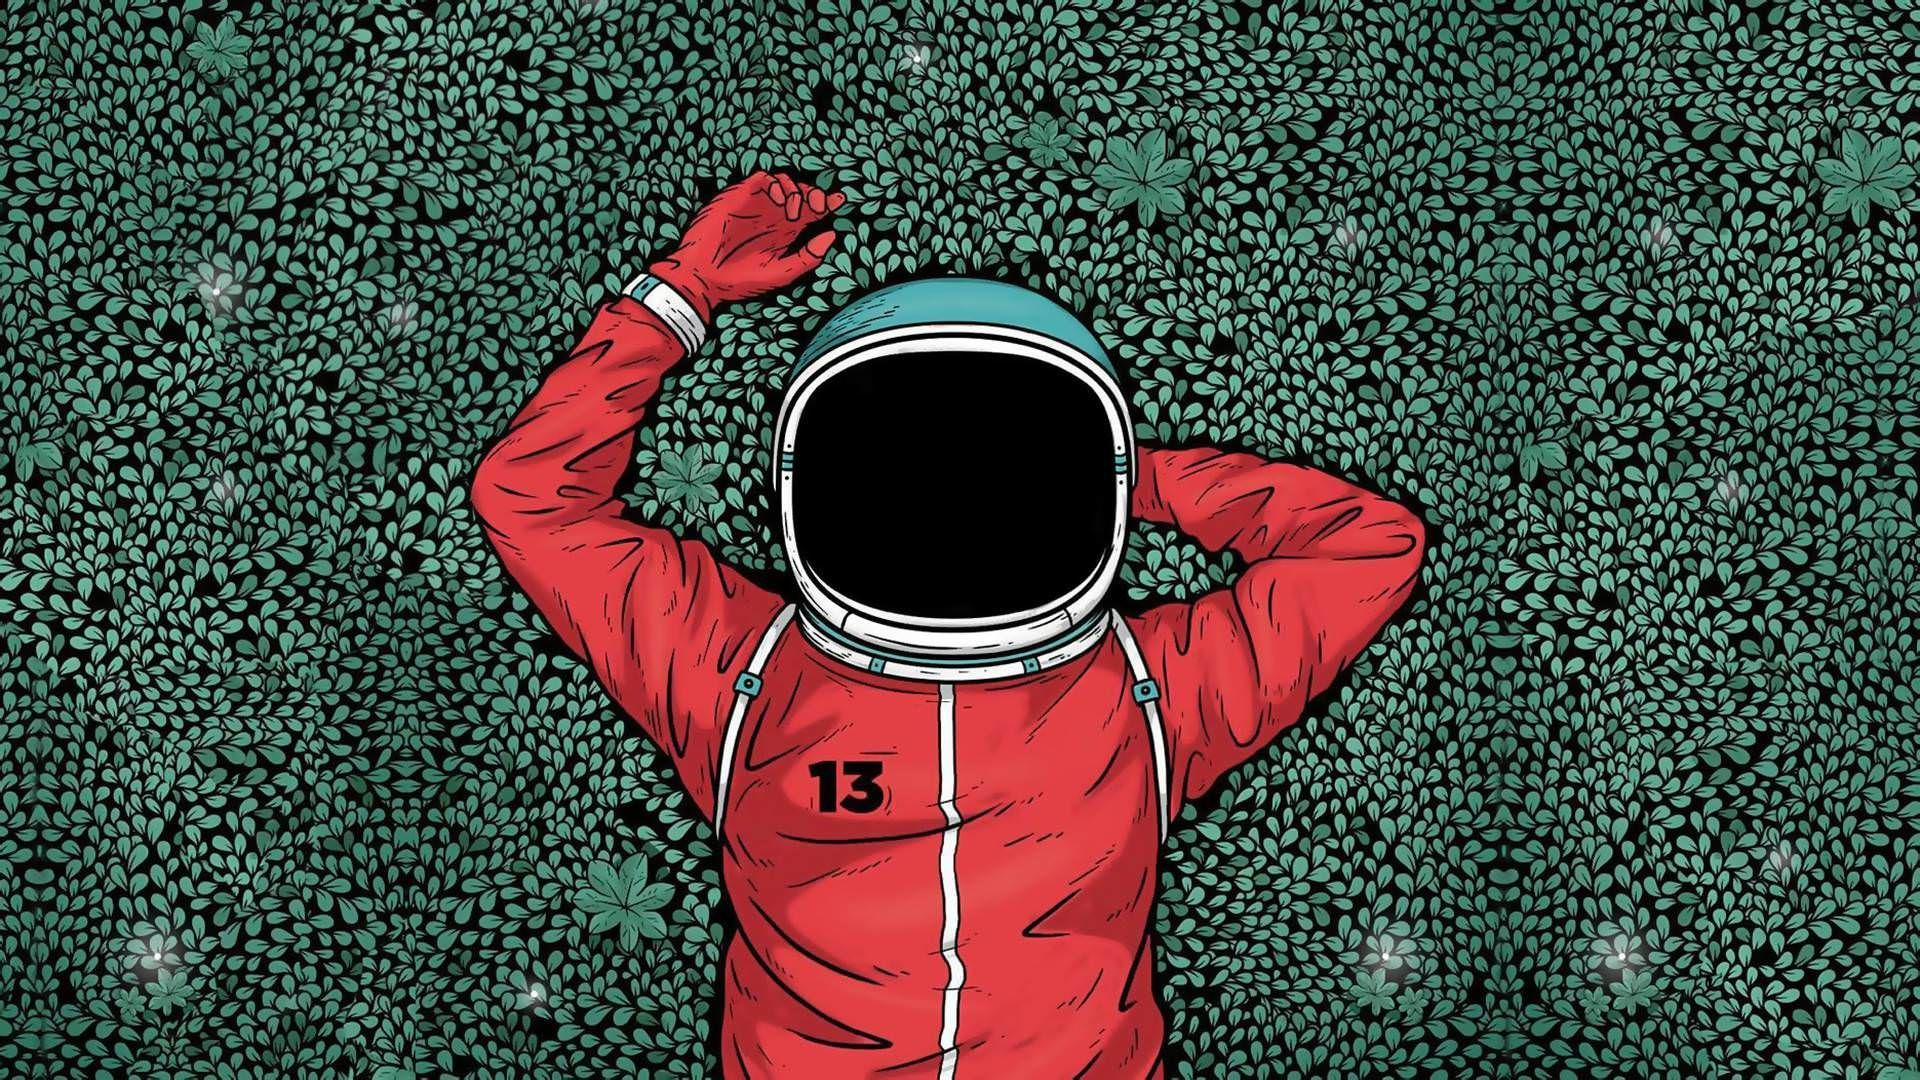 Download Hd Astronaut Wallpapers Best Collection Enjoy And Share Your Favorite Astronaut Wallpaper Computer Wallpaper Desktop Wallpapers Desktop Wallpaper Art Download cute laptop wallpapers hd